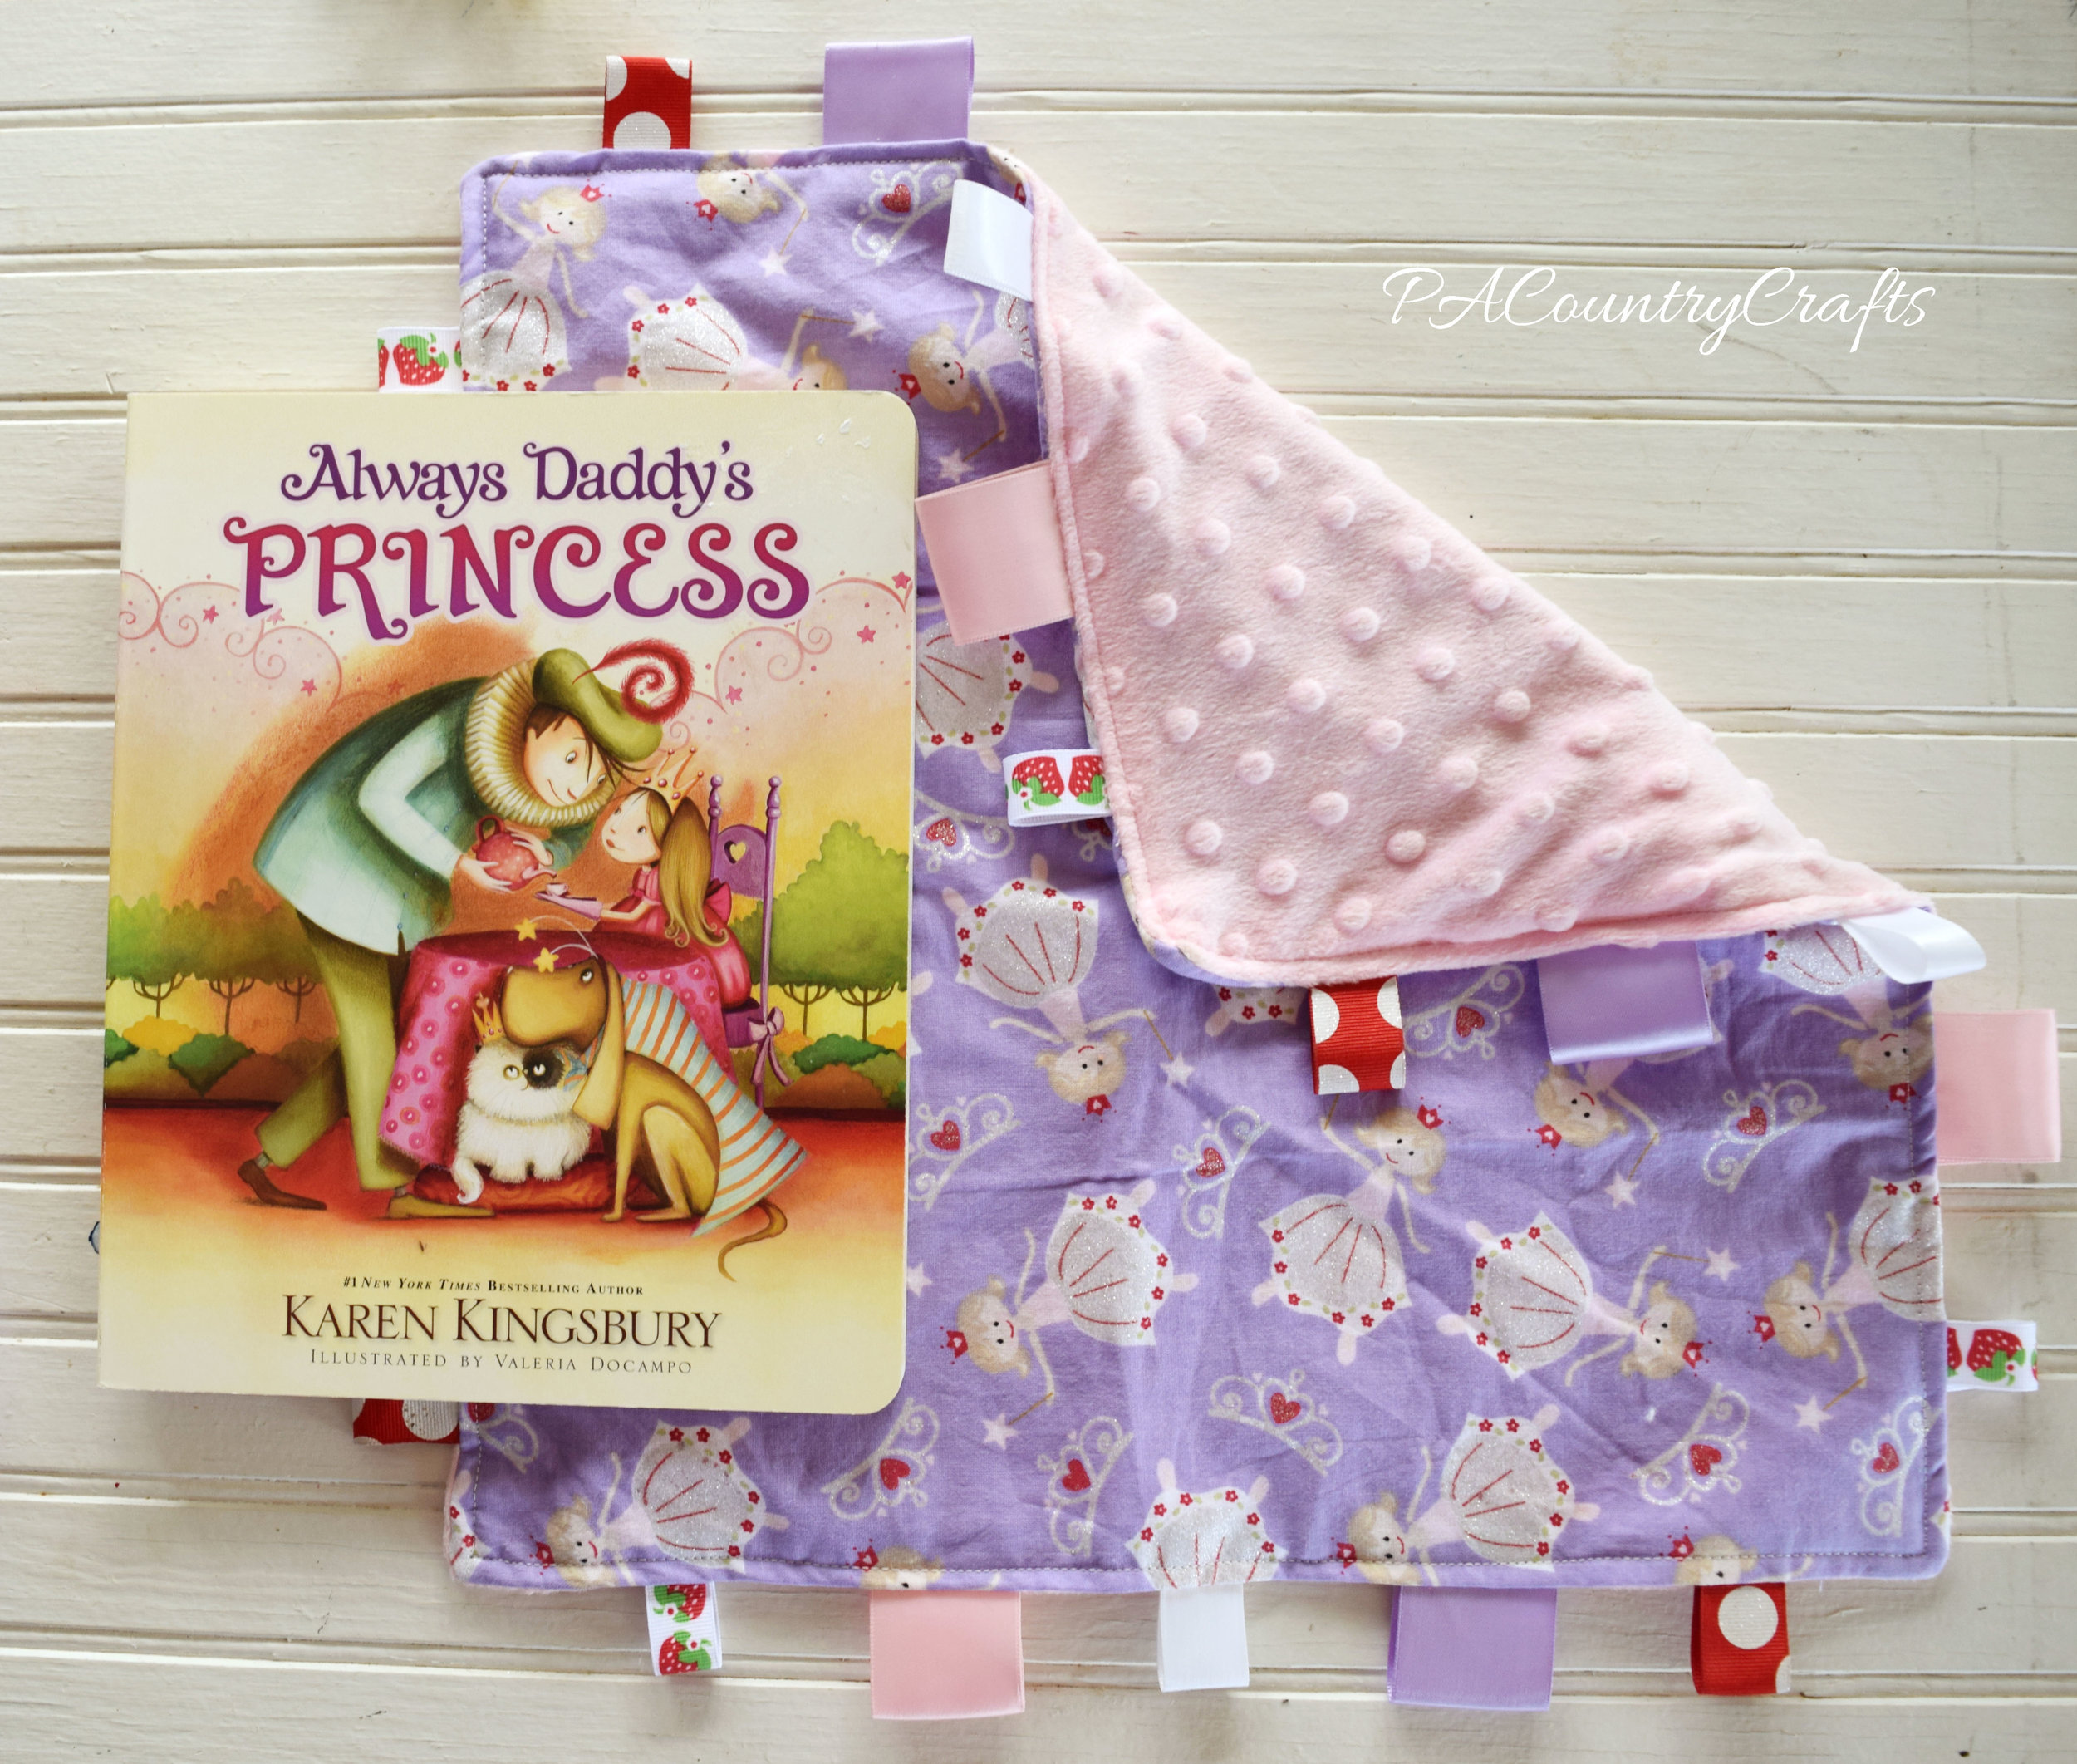 minky back princess taggy blanket